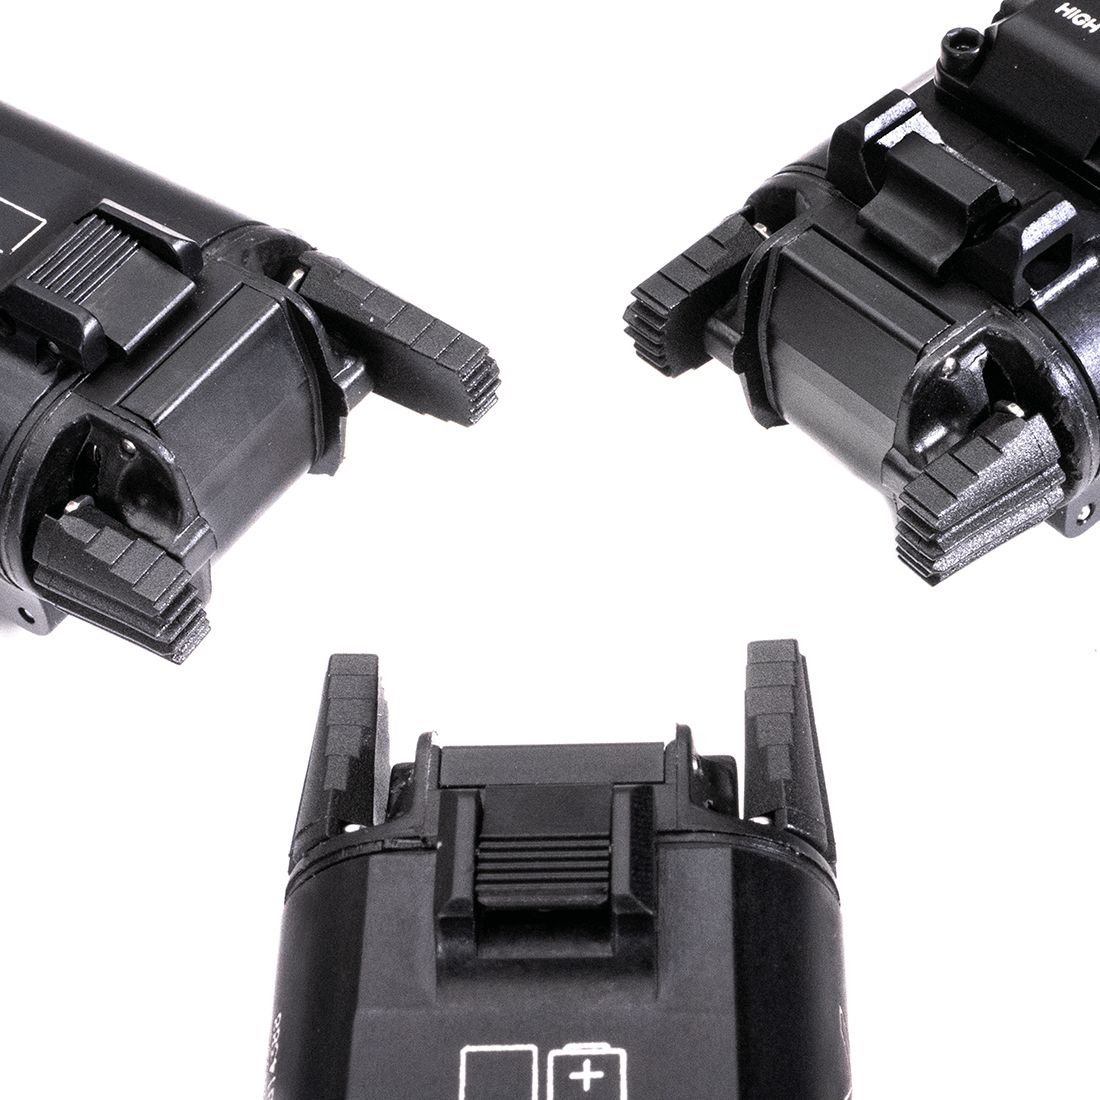 PHLster ARC Enhanced Switches for SureFire Weapon Lights (8)